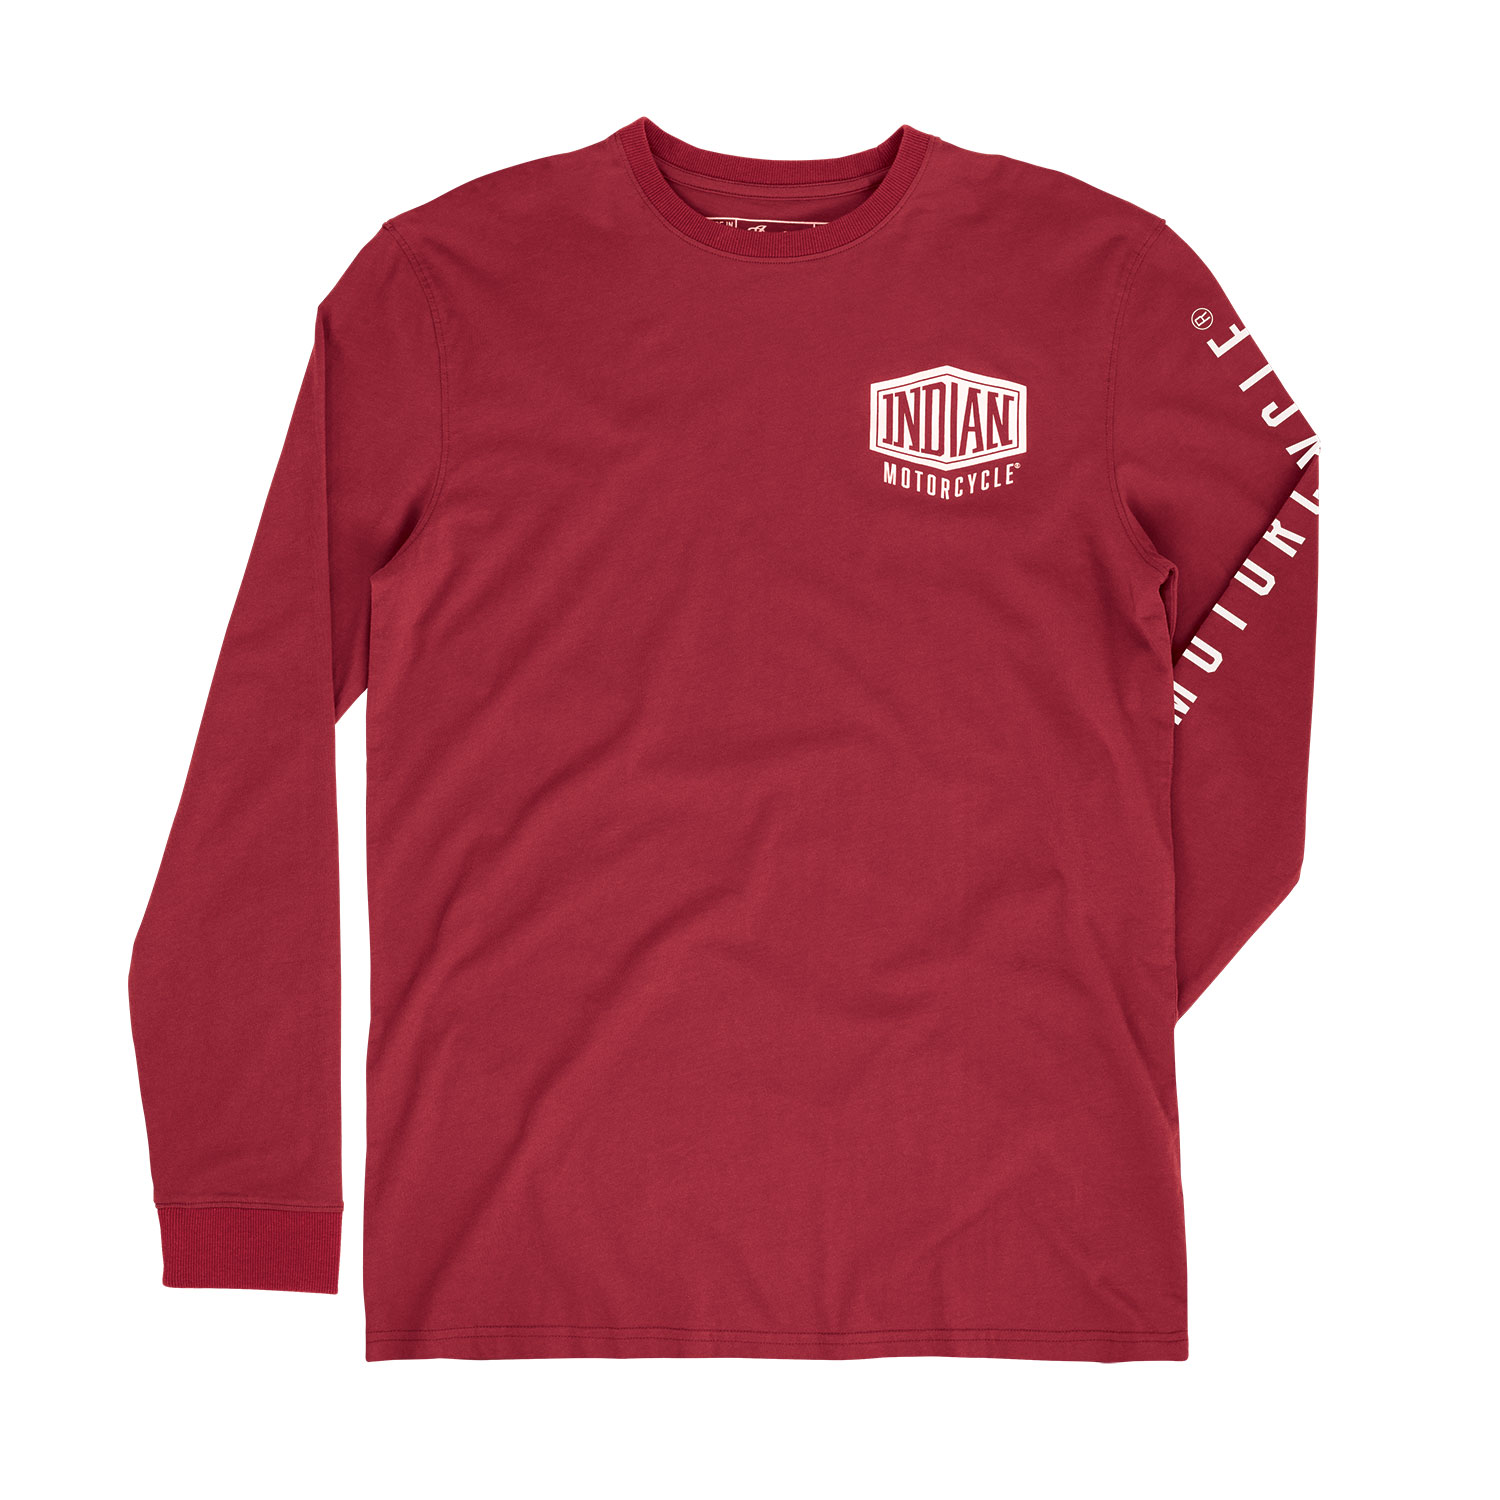 Men's Long-Sleeve T-Shirt with Shield Logo, Red